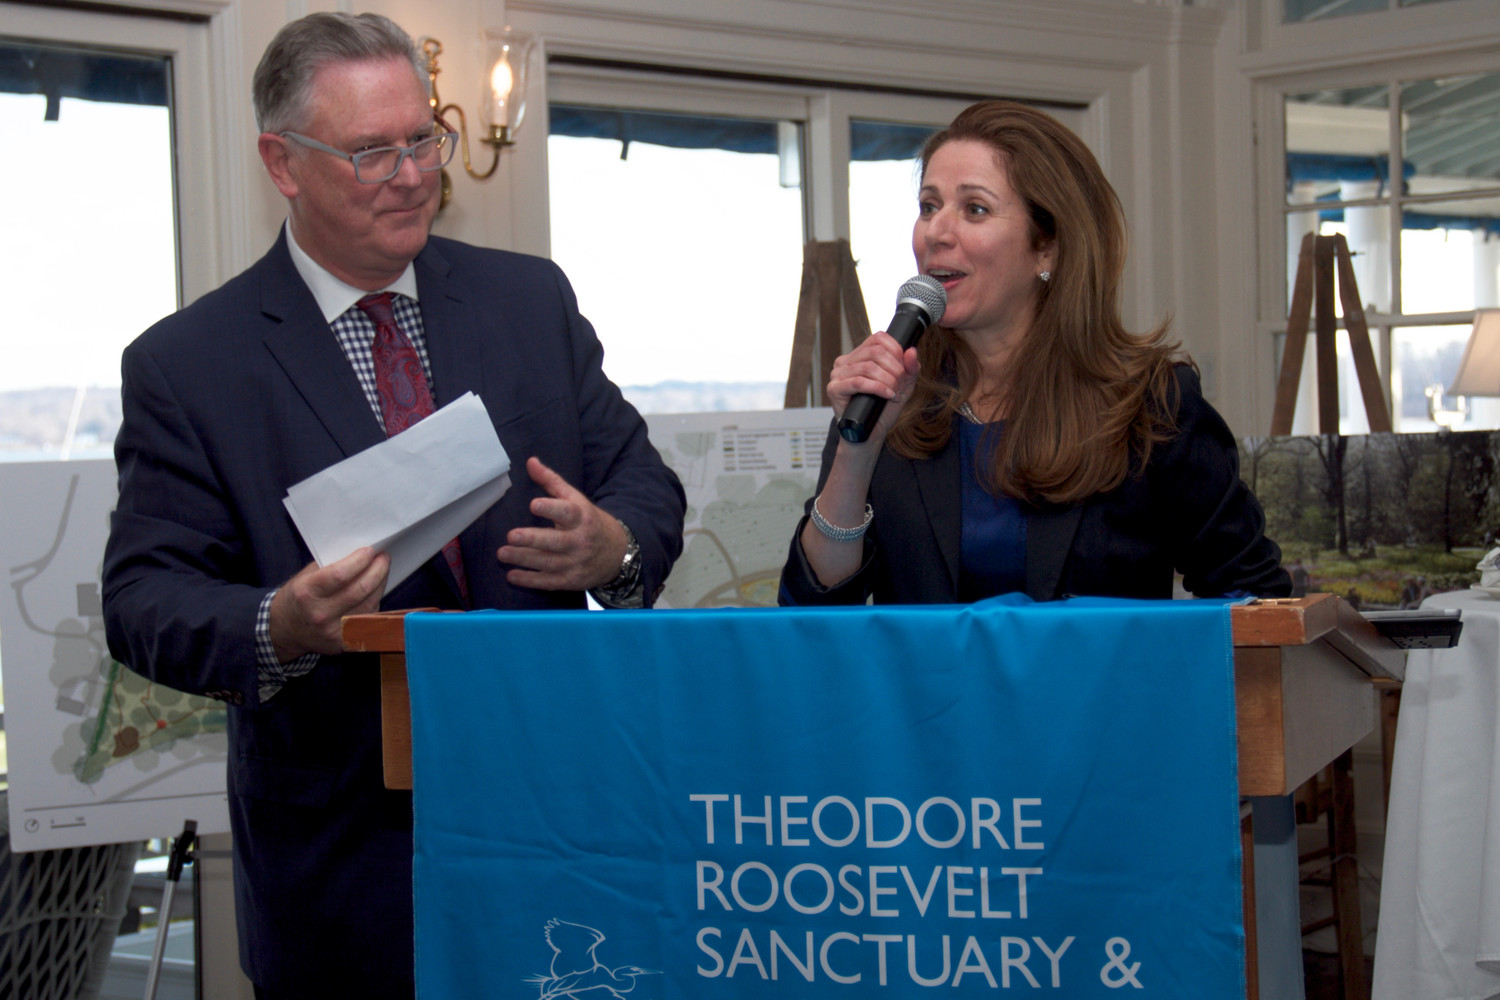 Ed Mohlenhoff, co-chair of the Theodore Roosevelt Sanctuary and Audubon Center's benefit, welcomed Audubon New York's Ana Paula Tavares, the organization's new executive director.